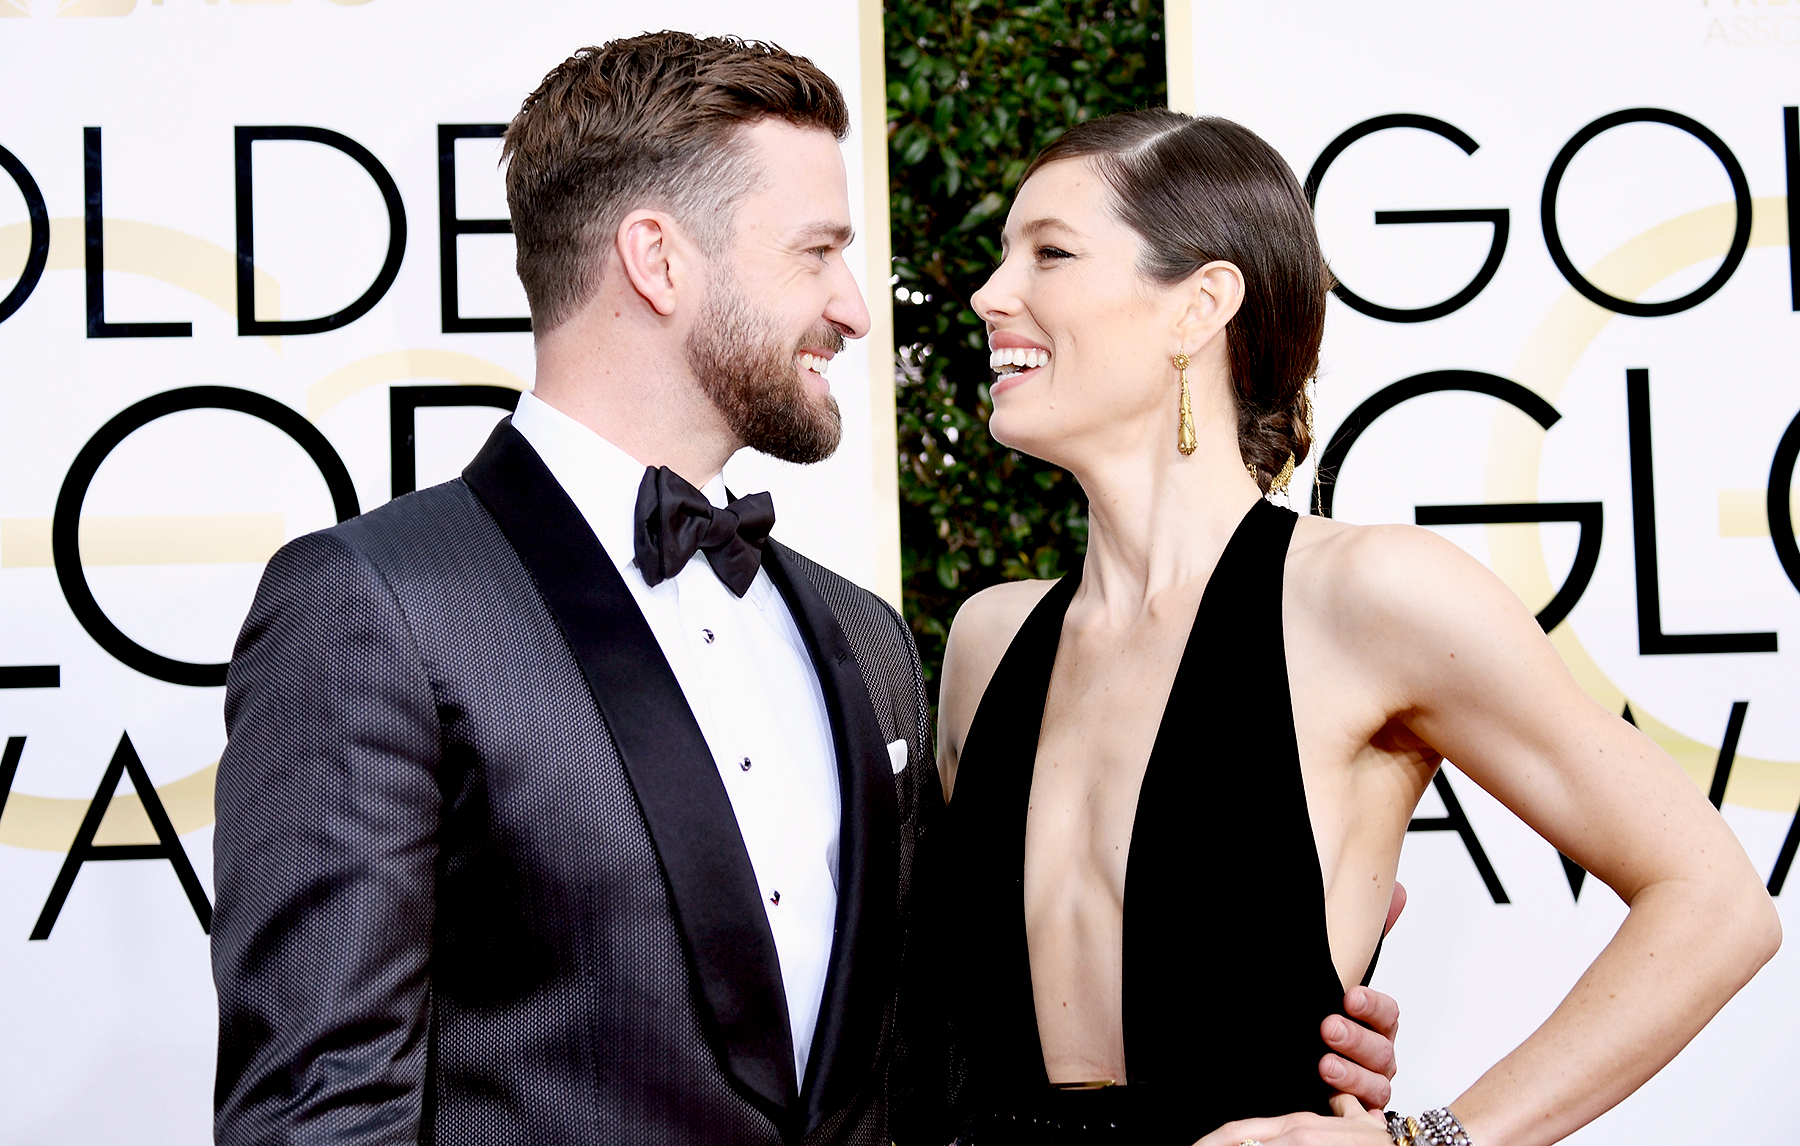 Justin Timberlake and Jessica Biel attend the 74th Annual Golden Globe Awards at The Beverly Hilton hotel in Beverly Hills on January 8, 2017.